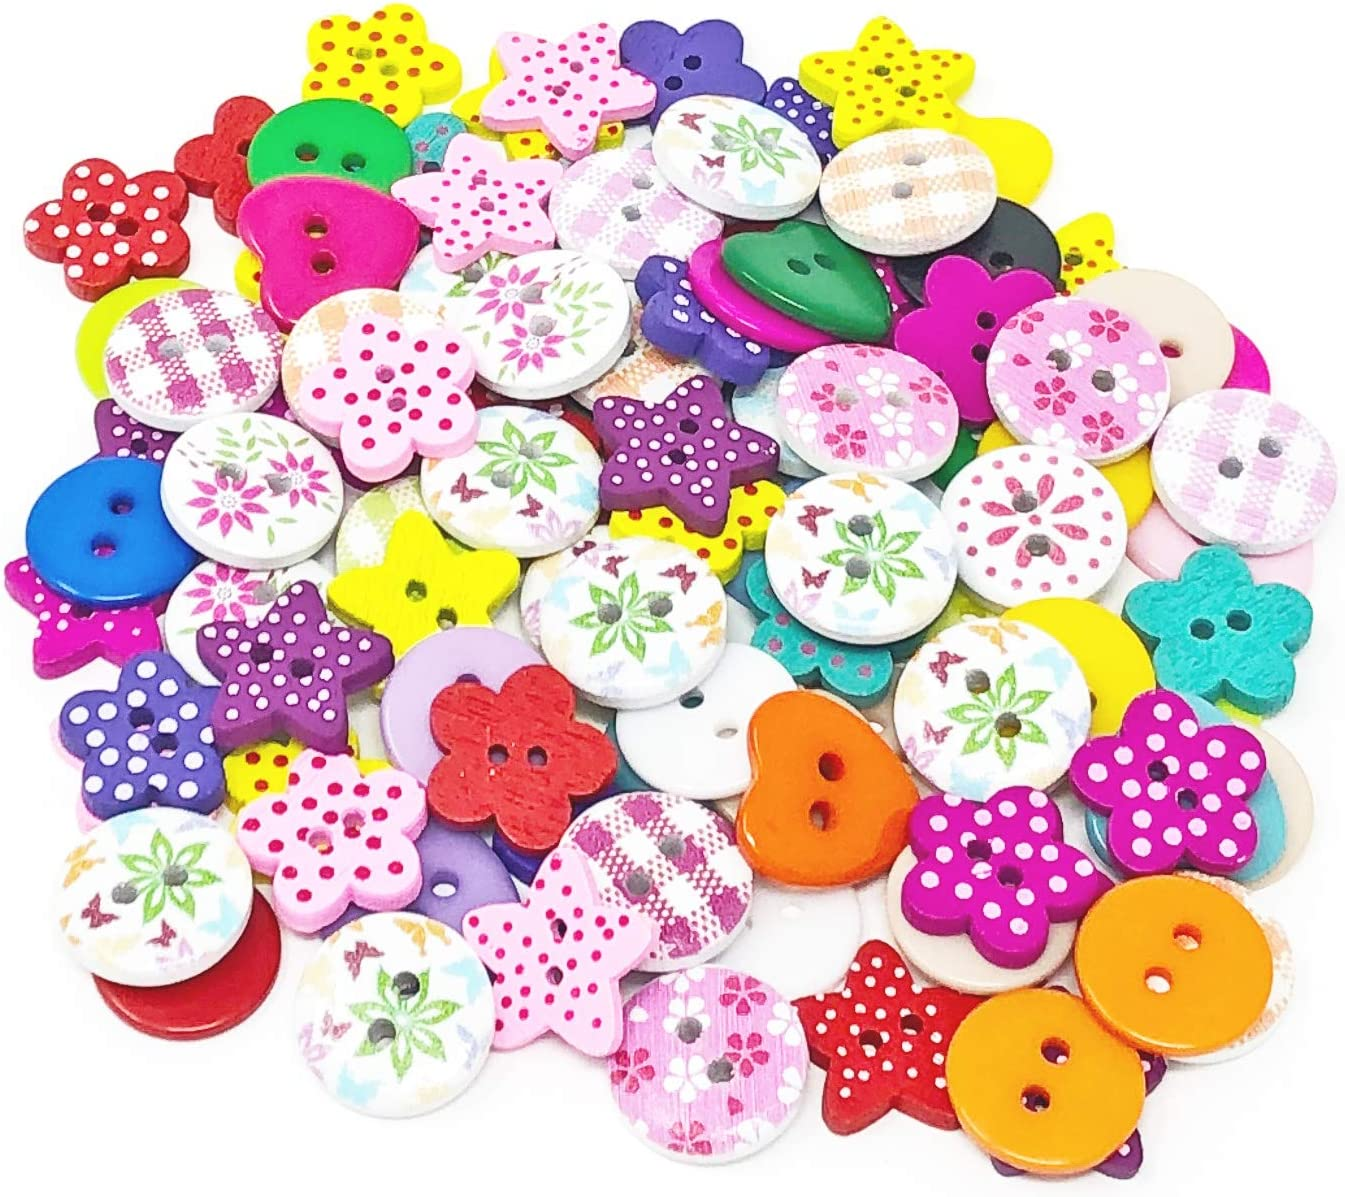 Special Touches 150pcs Xmas Mix Wood Acrylic /& Resin Buttons For Cardmaking Embellishments